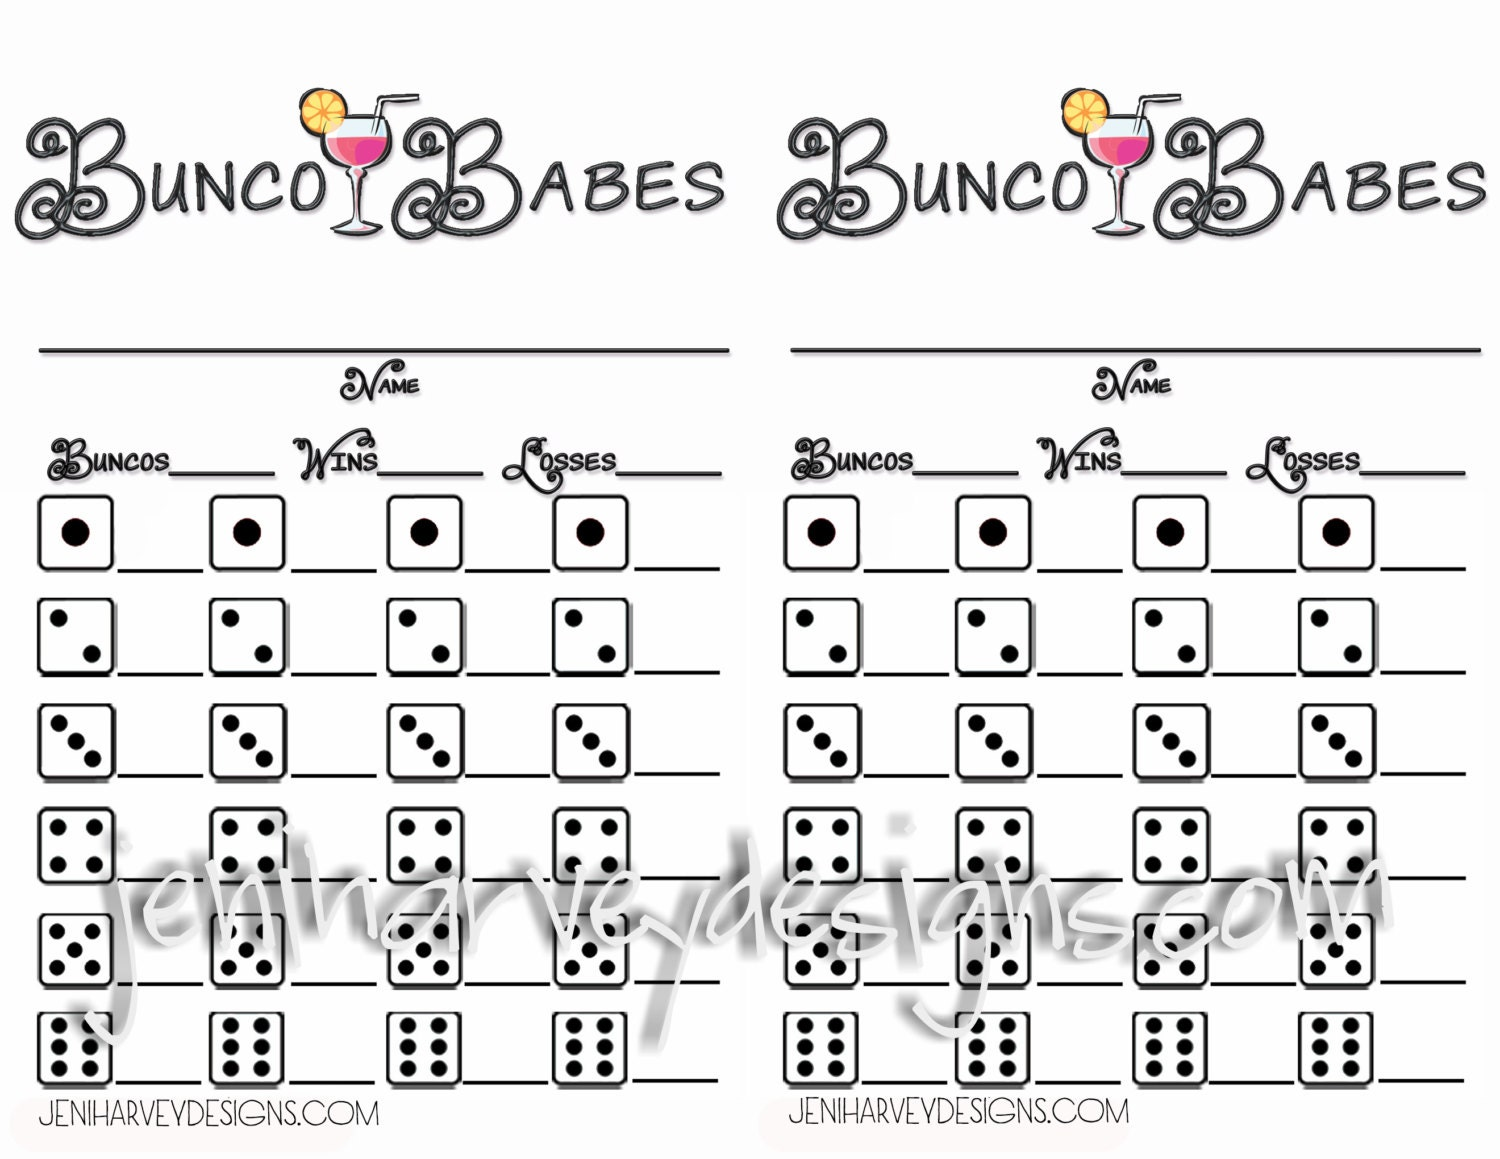 Bunco Babes Bunco Score Sheet – Bunco Score Sheets Template